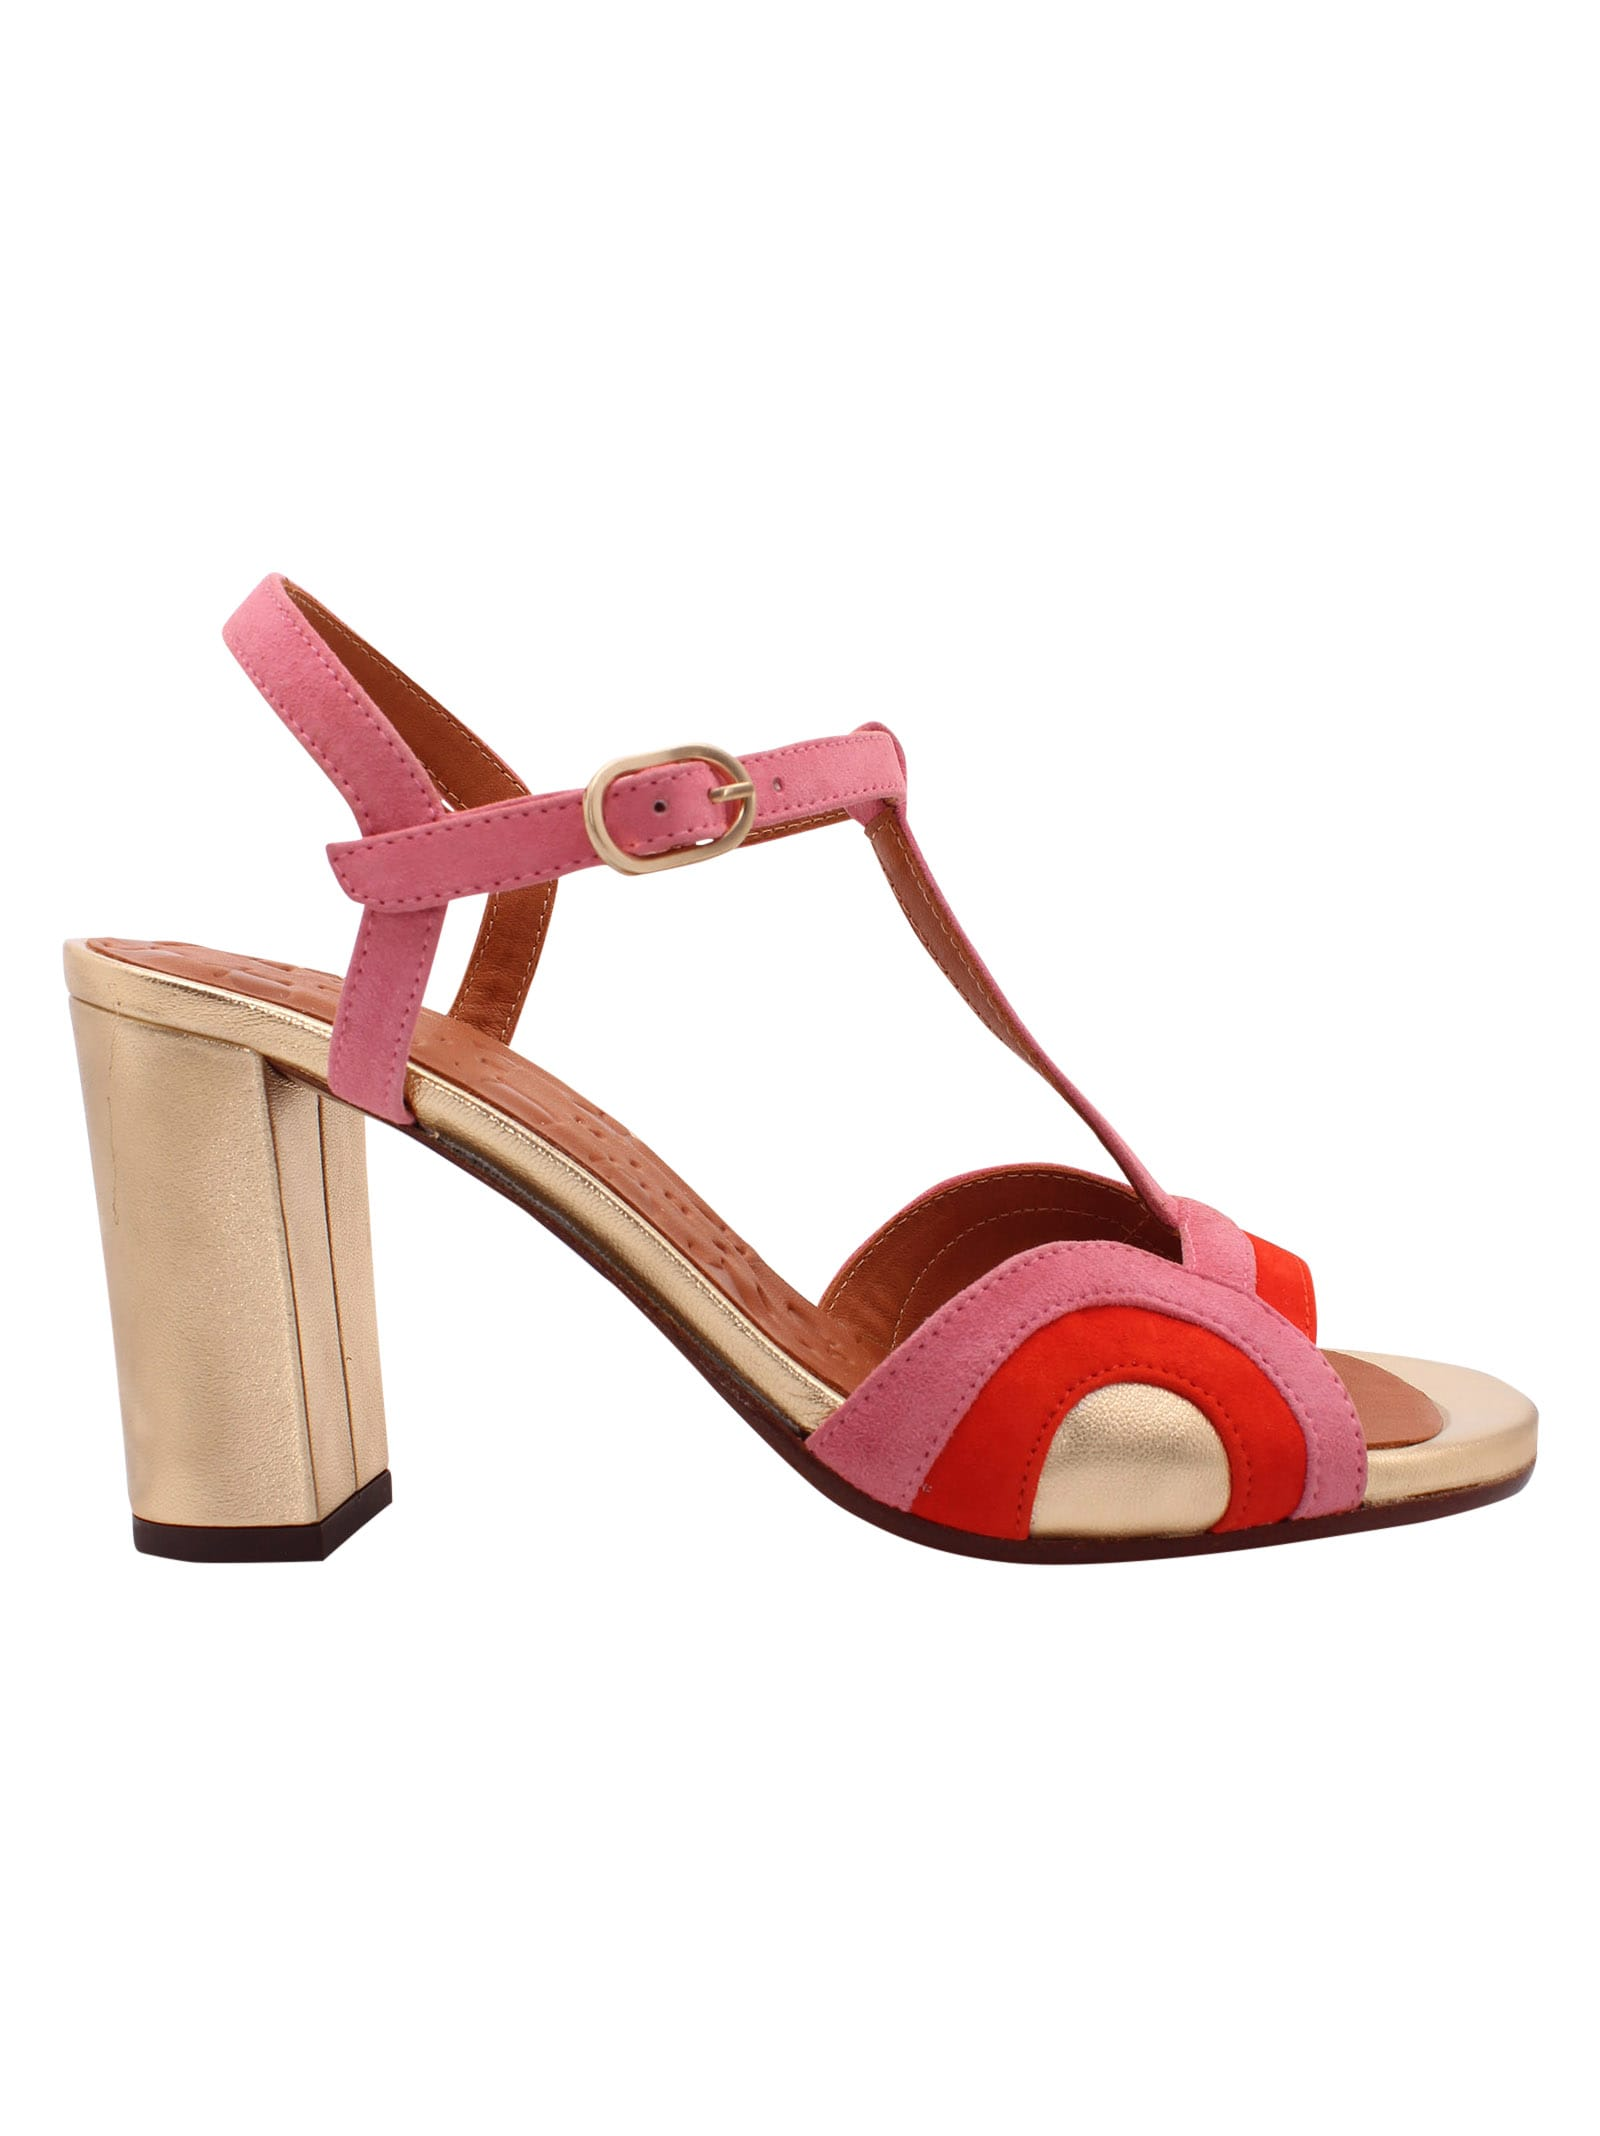 Chie Mihara Banela Leather Sandals